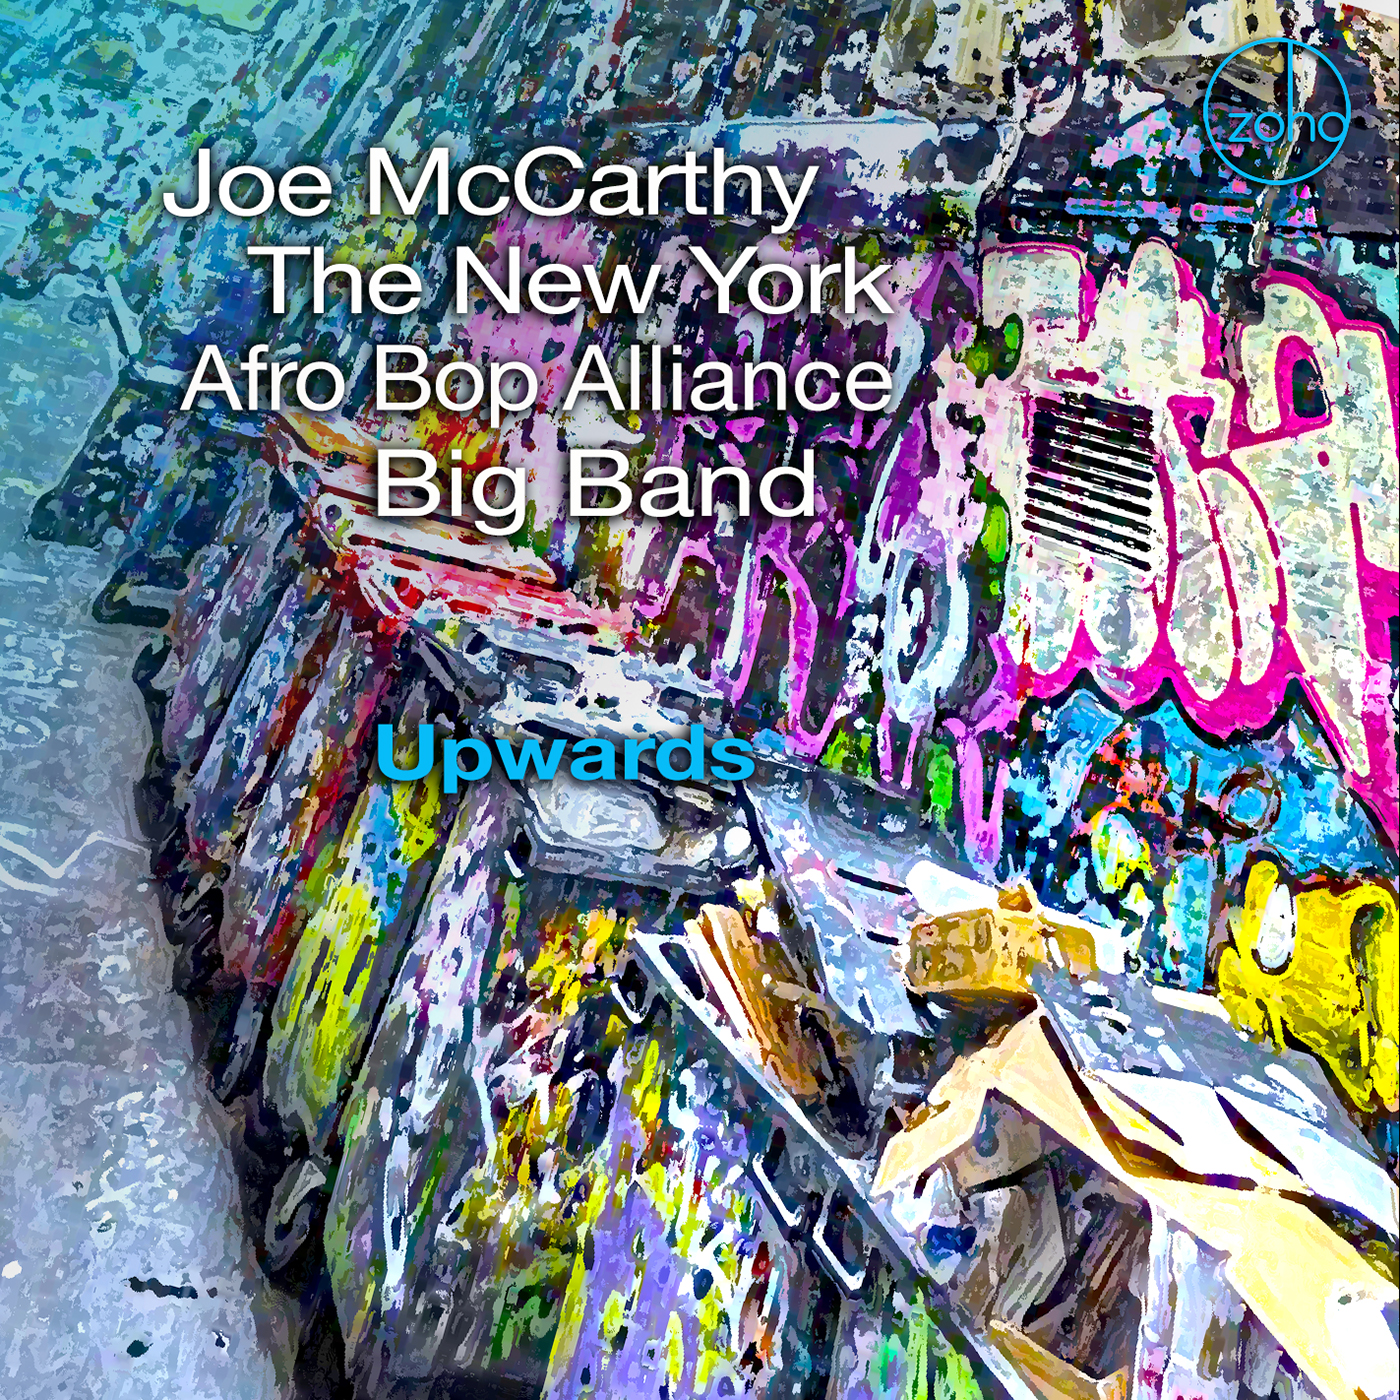 Joe McCarthy The New York Afro Bop Alliance Big Band Upwards